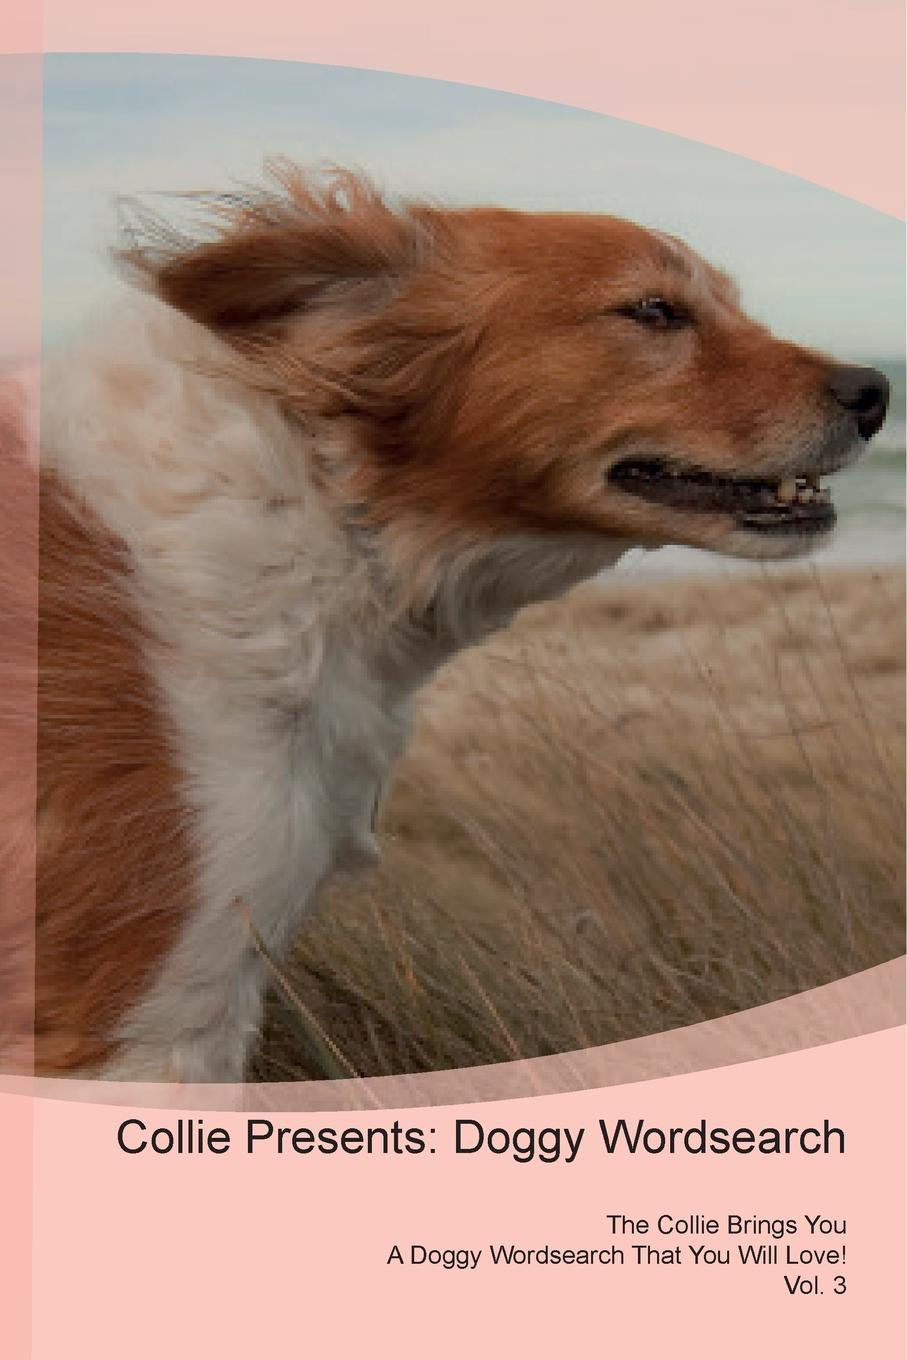 Doggy Puzzles Collie Presents. Wordsearch The Brings You A That Will Love! Vol. 3